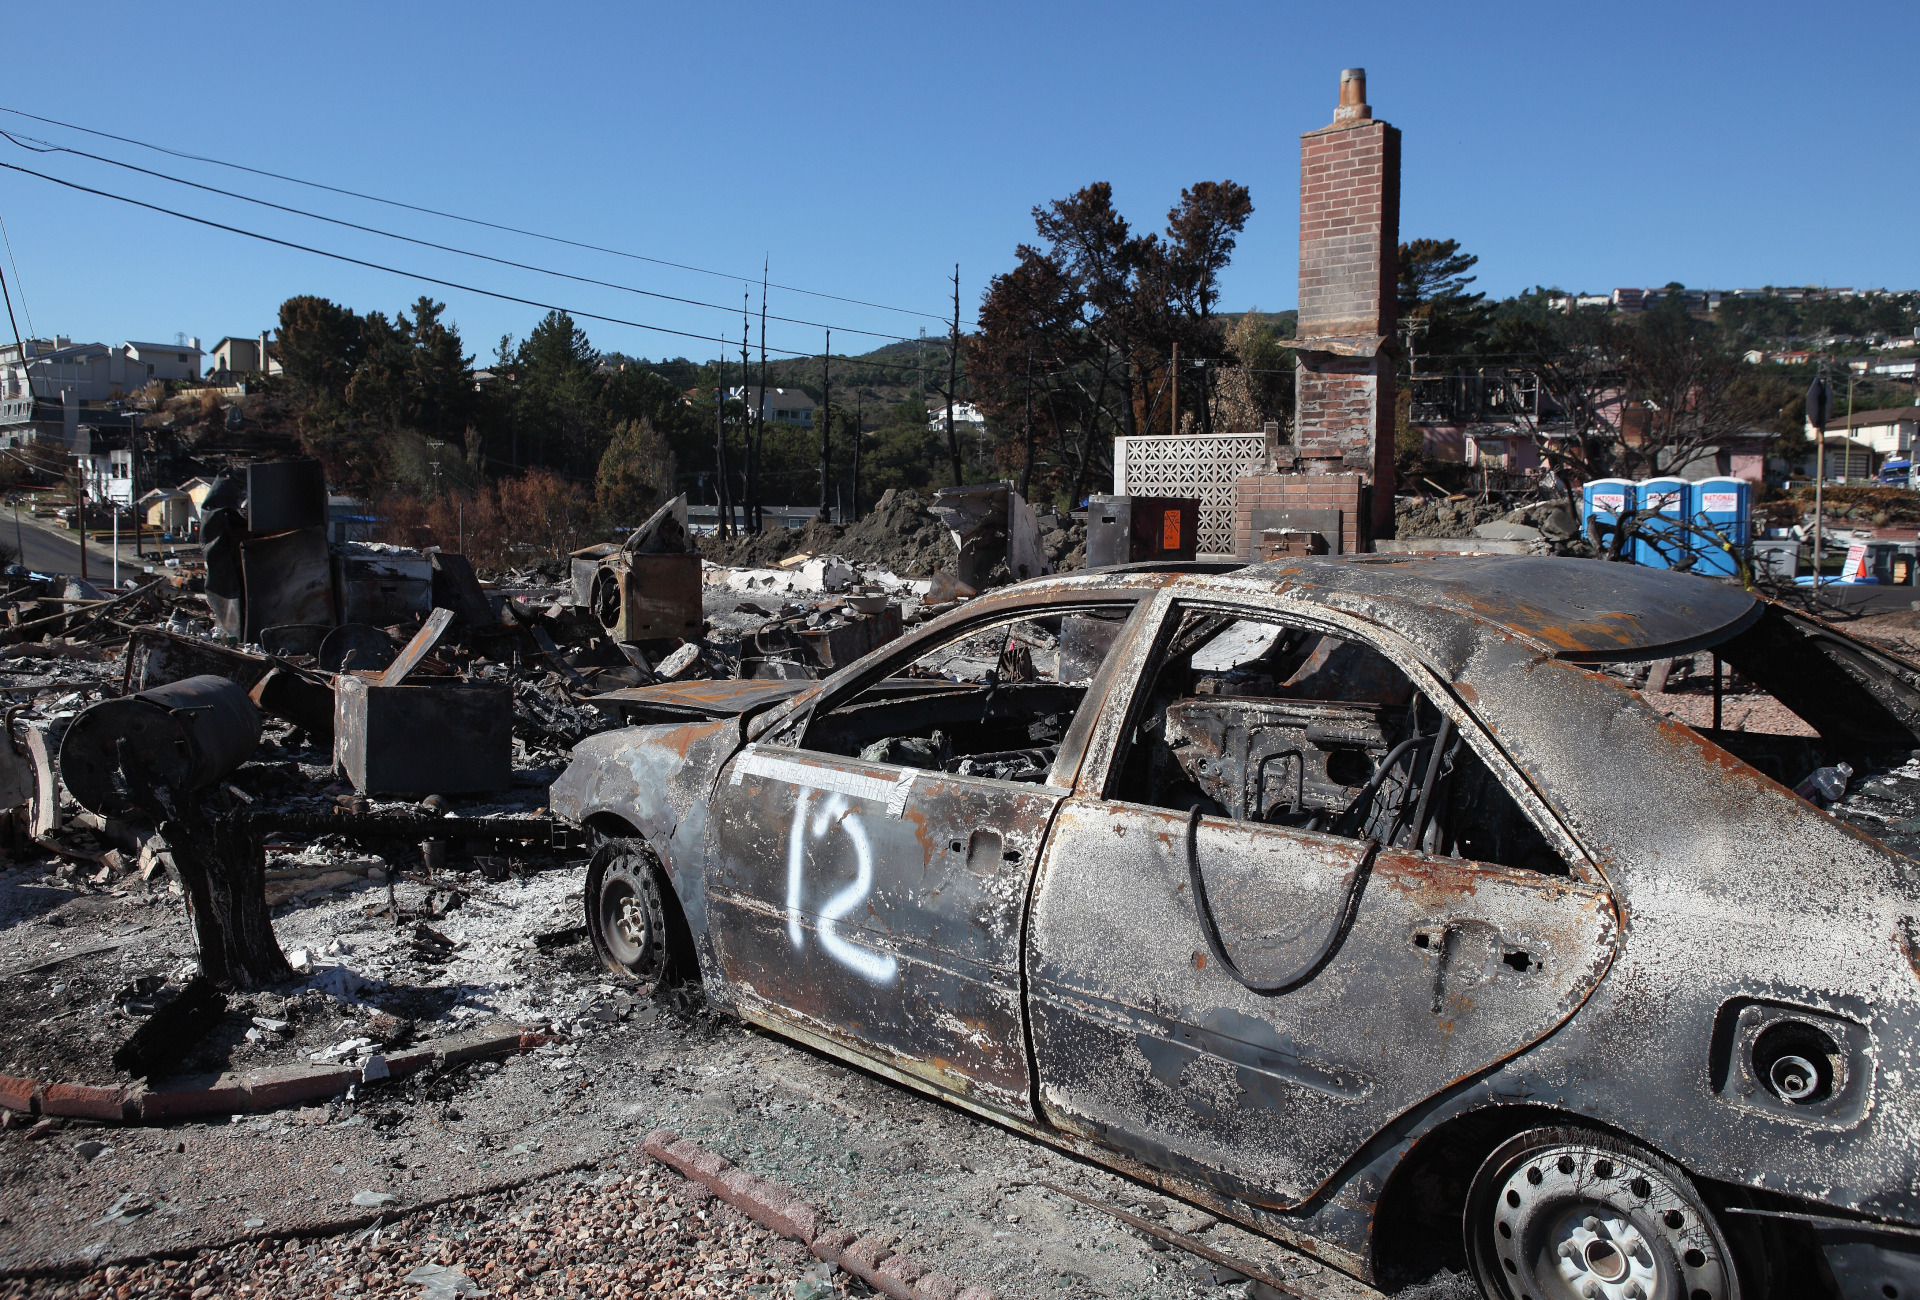 The shell of a car sits in the driveway of a burned home near the epicenter of the San Bruno pipeline explosion.